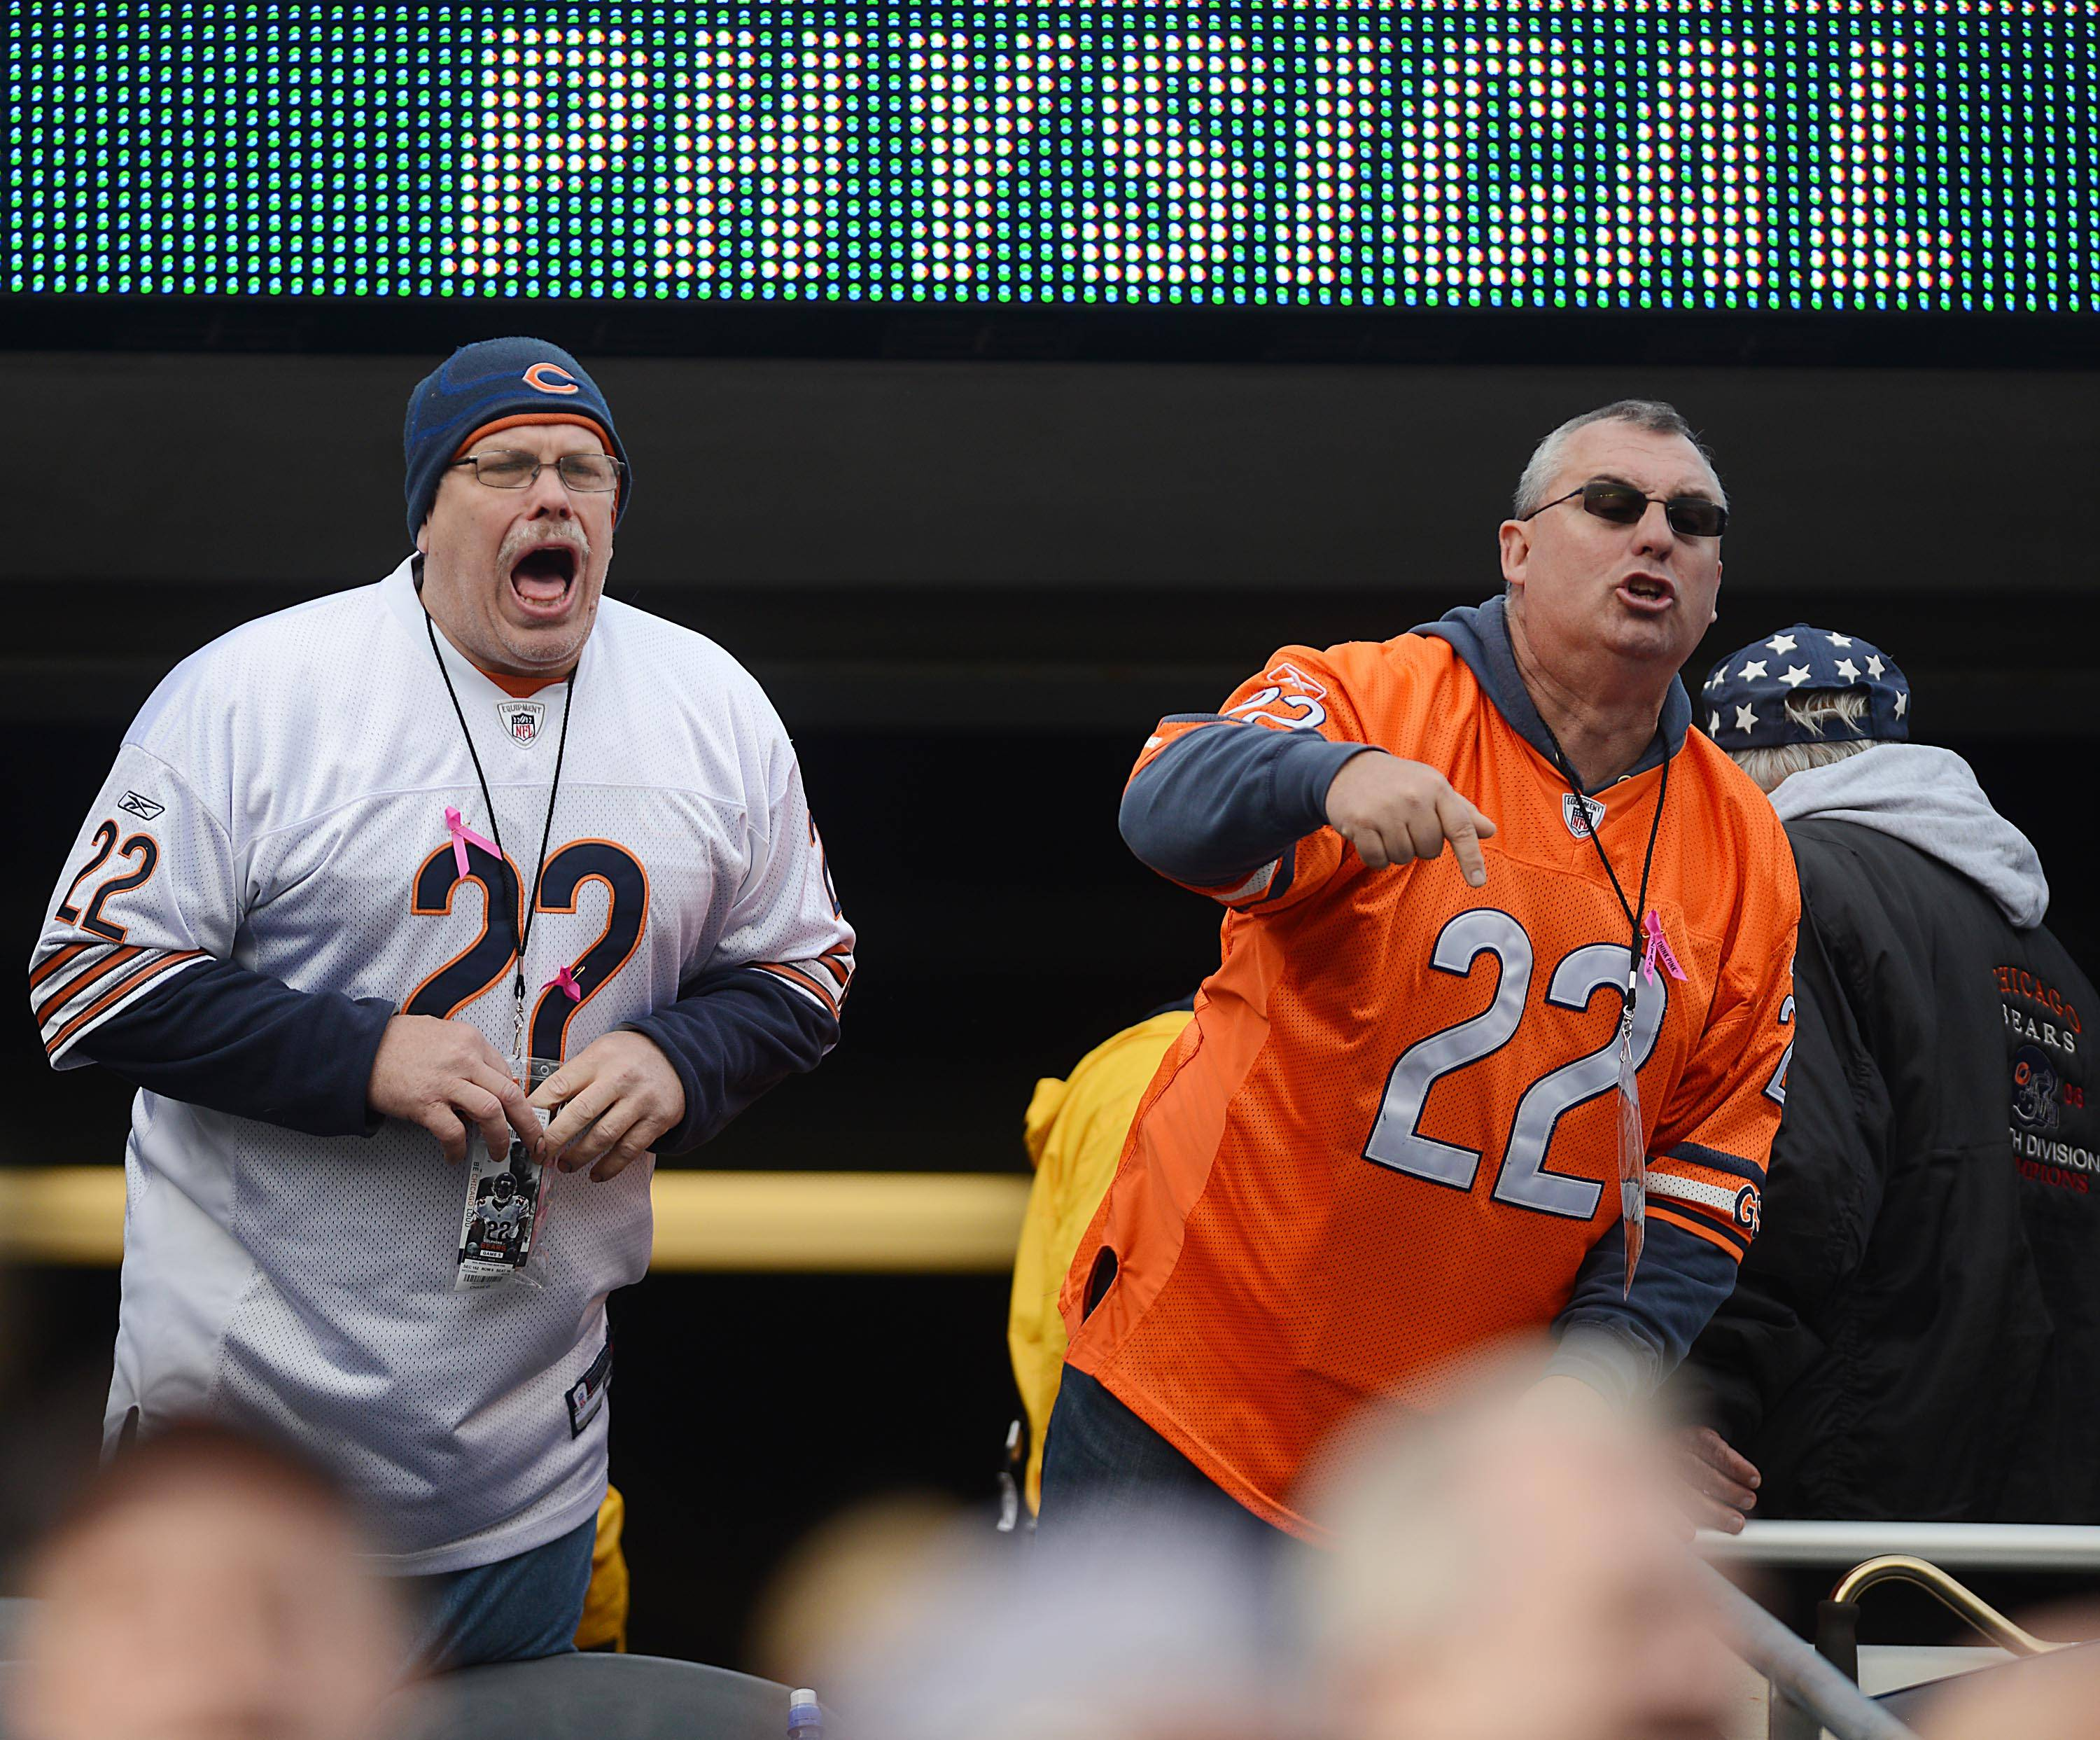 Two Chicago Bears fans scream at the team as they leave the field after losing to the Miami Dolphins Sunday at Soldier Field in Chicago.